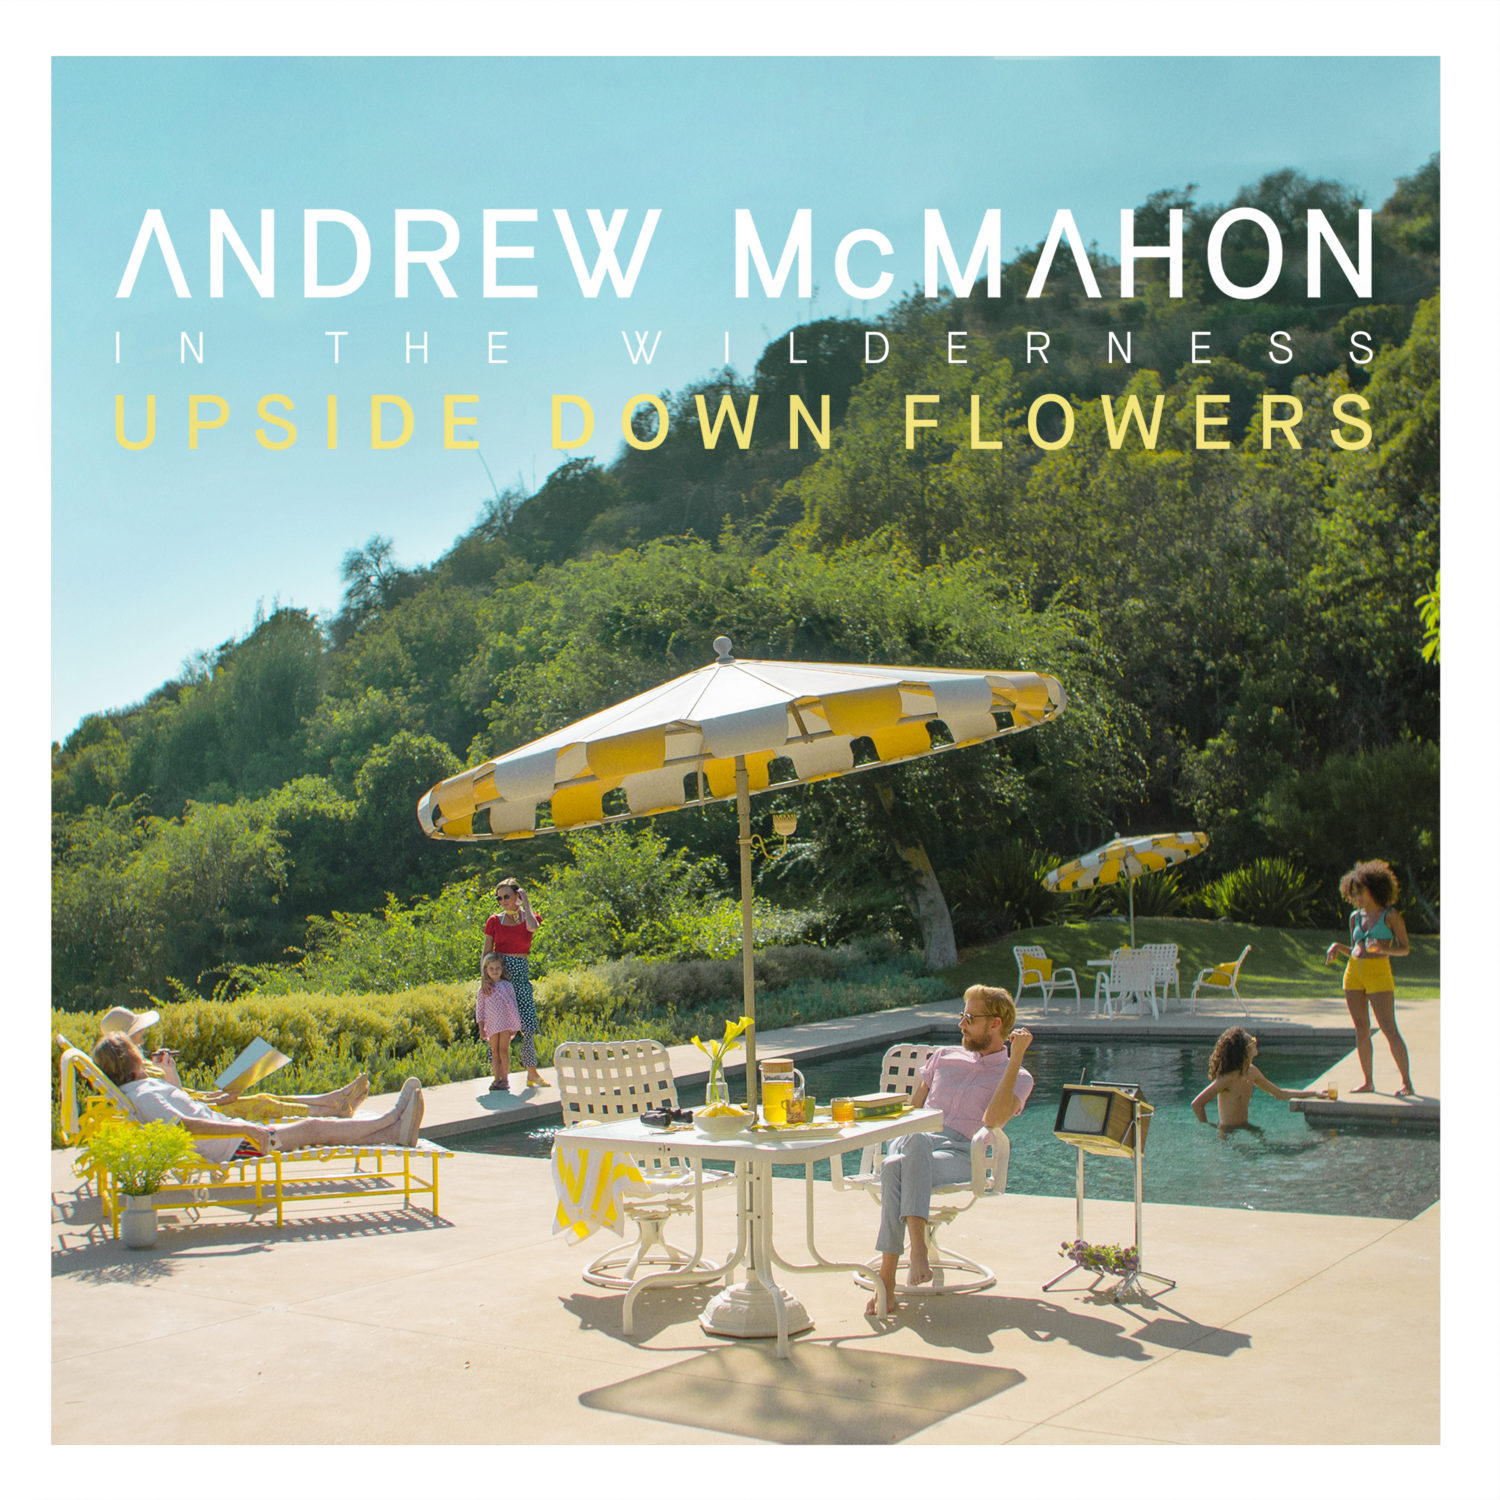 UPSIDE DOWN FLOWERS (NOV 16) Andrew McMahon In The Wilderness